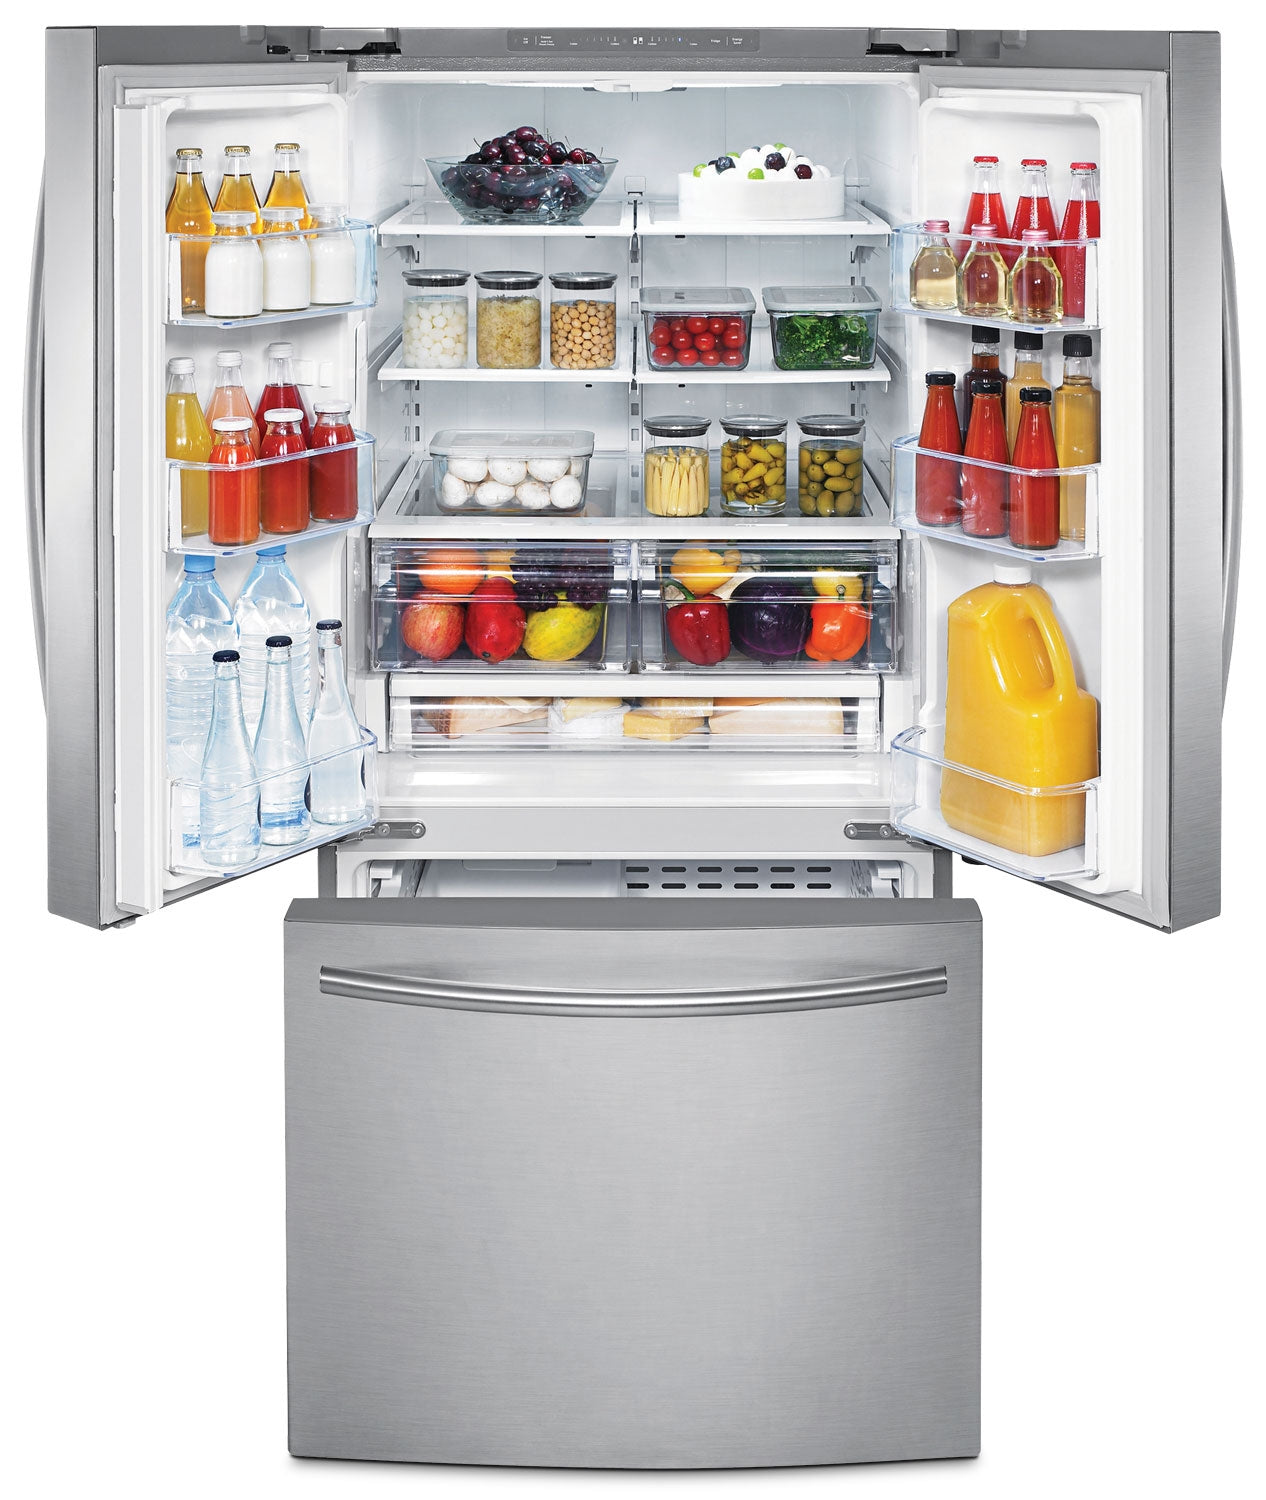 Samsung 22 Cu Ft 30 Wide French Door Refrigerator Stainless